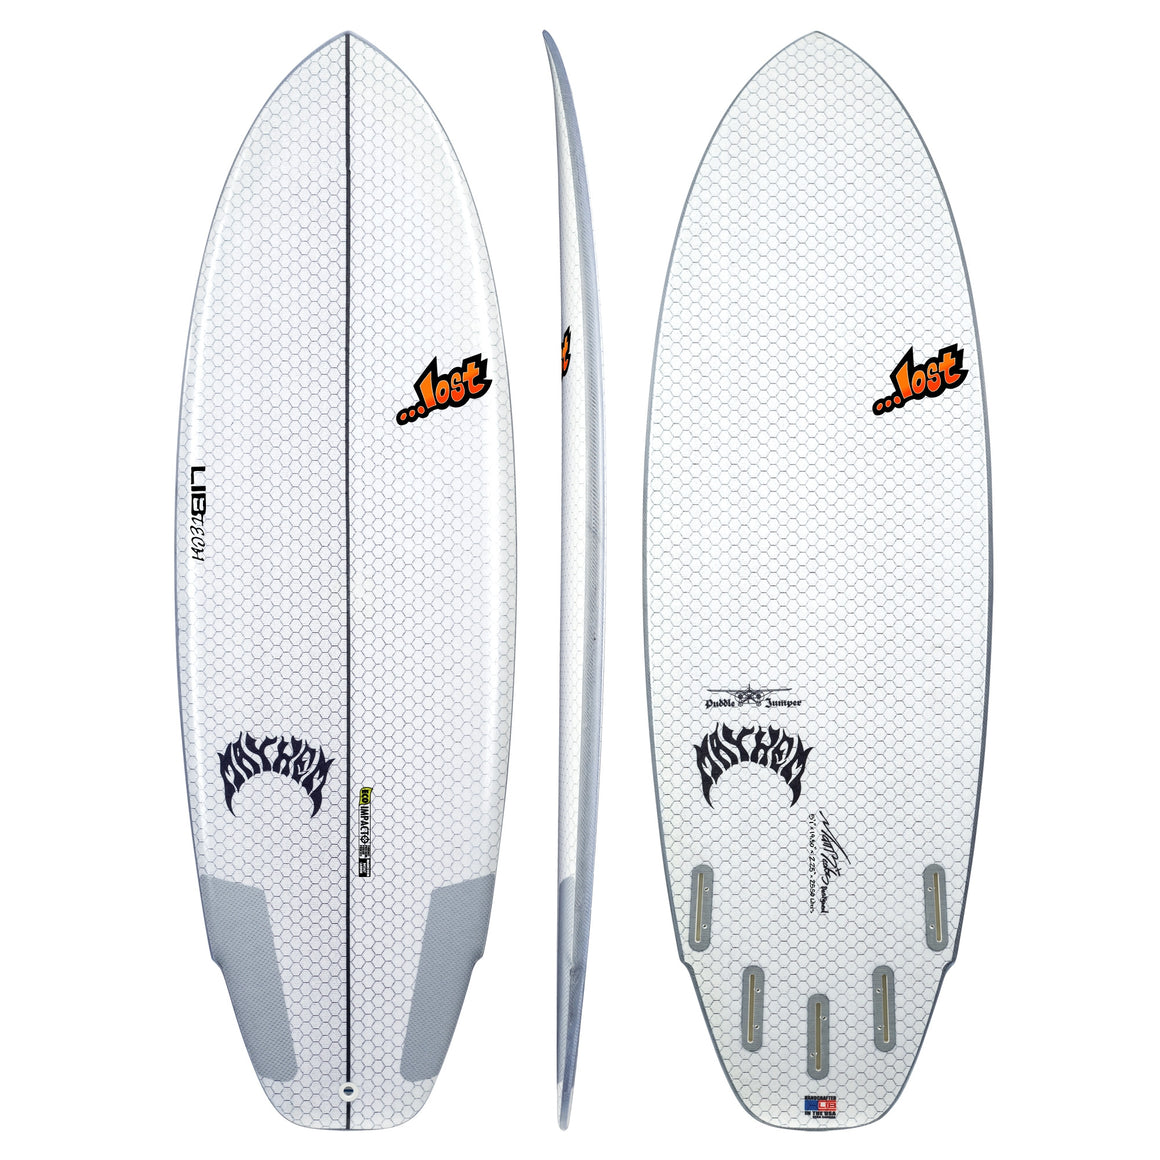 Libtech - Lost Puddle Jumper 5'9 (FCSII compatible)